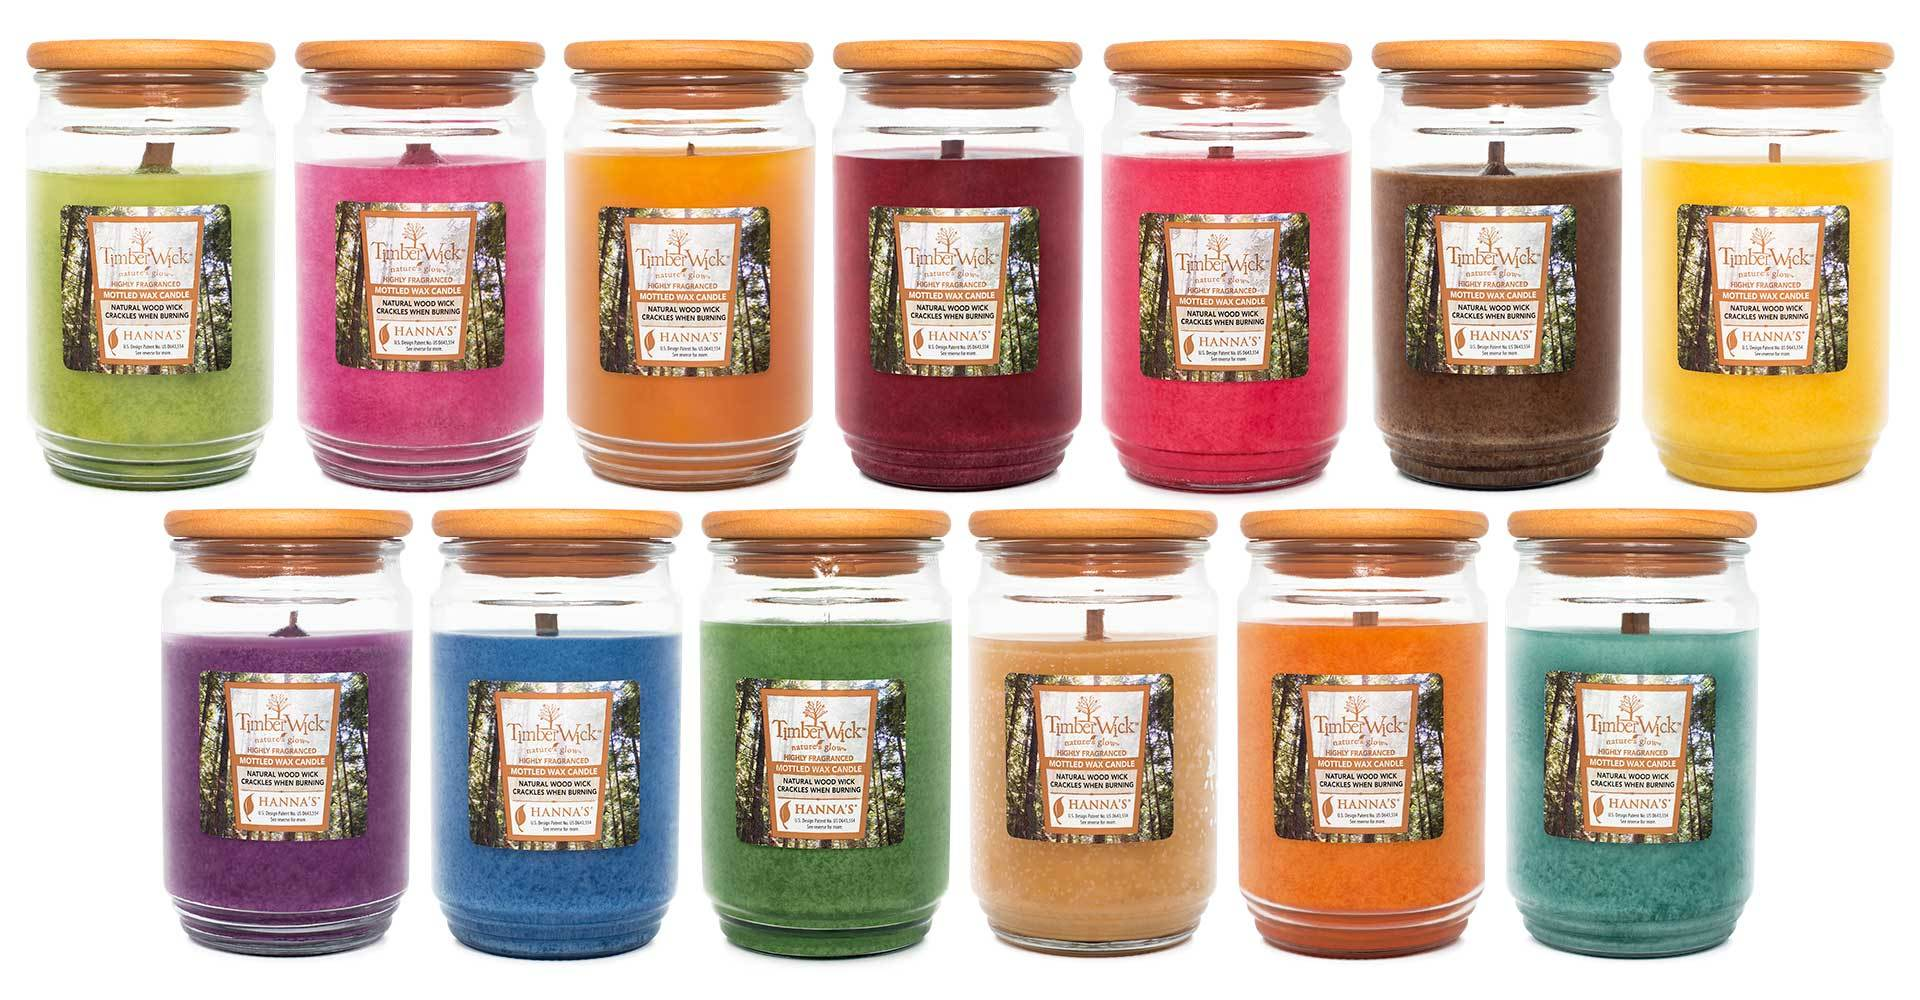 TimberWick Cranberry Mandarin Scented Mottled Candle Timberwick Candlemart.com $ 14.99